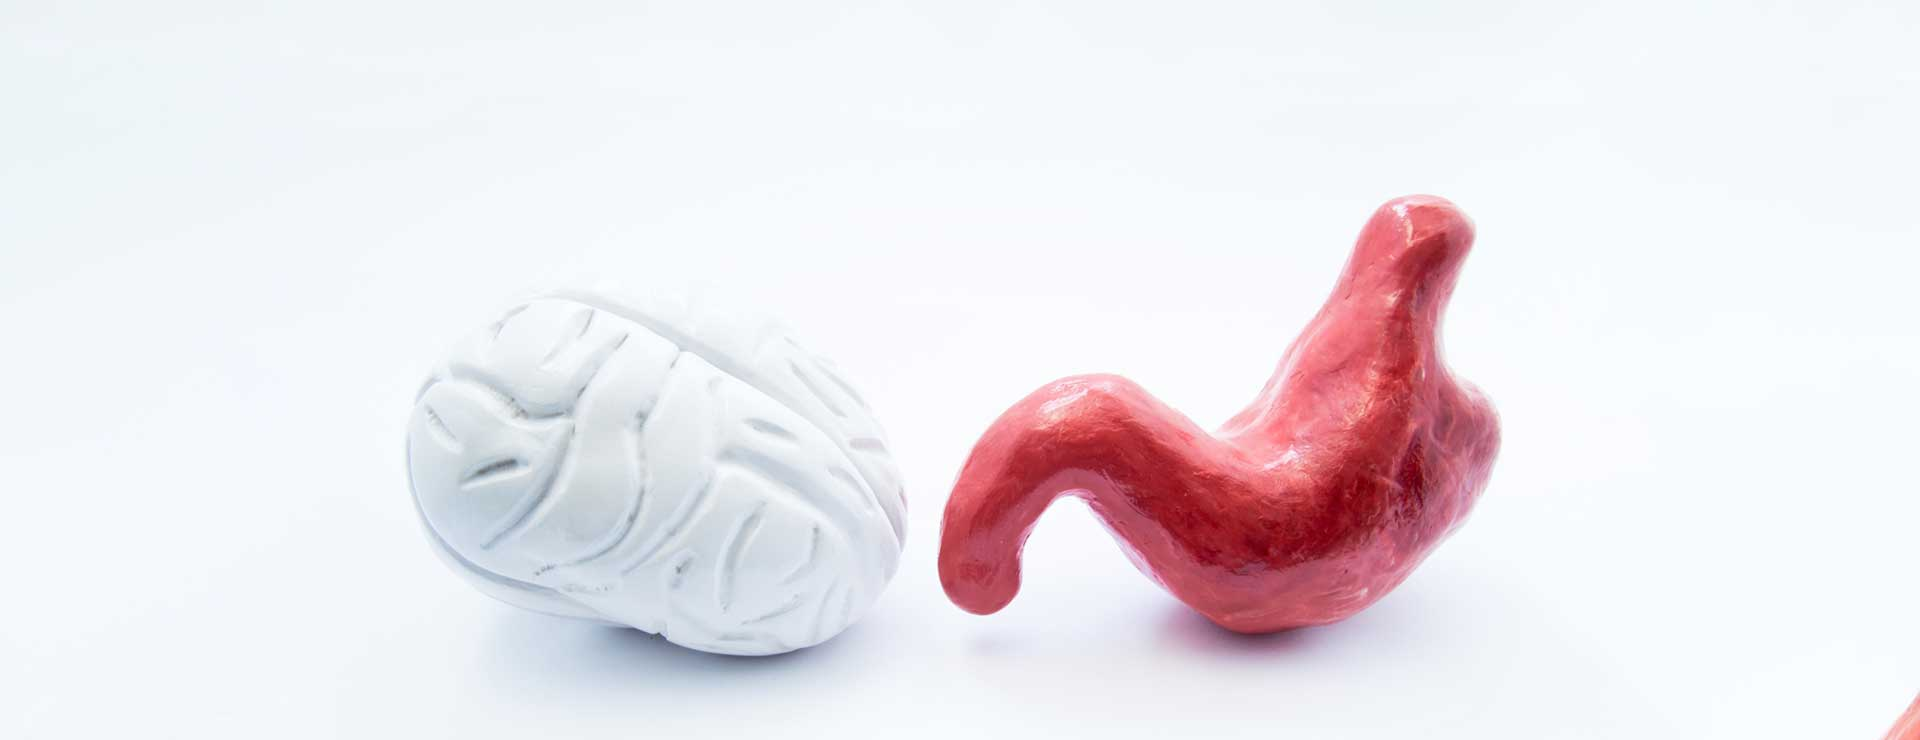 models of brain and stomach next to each other